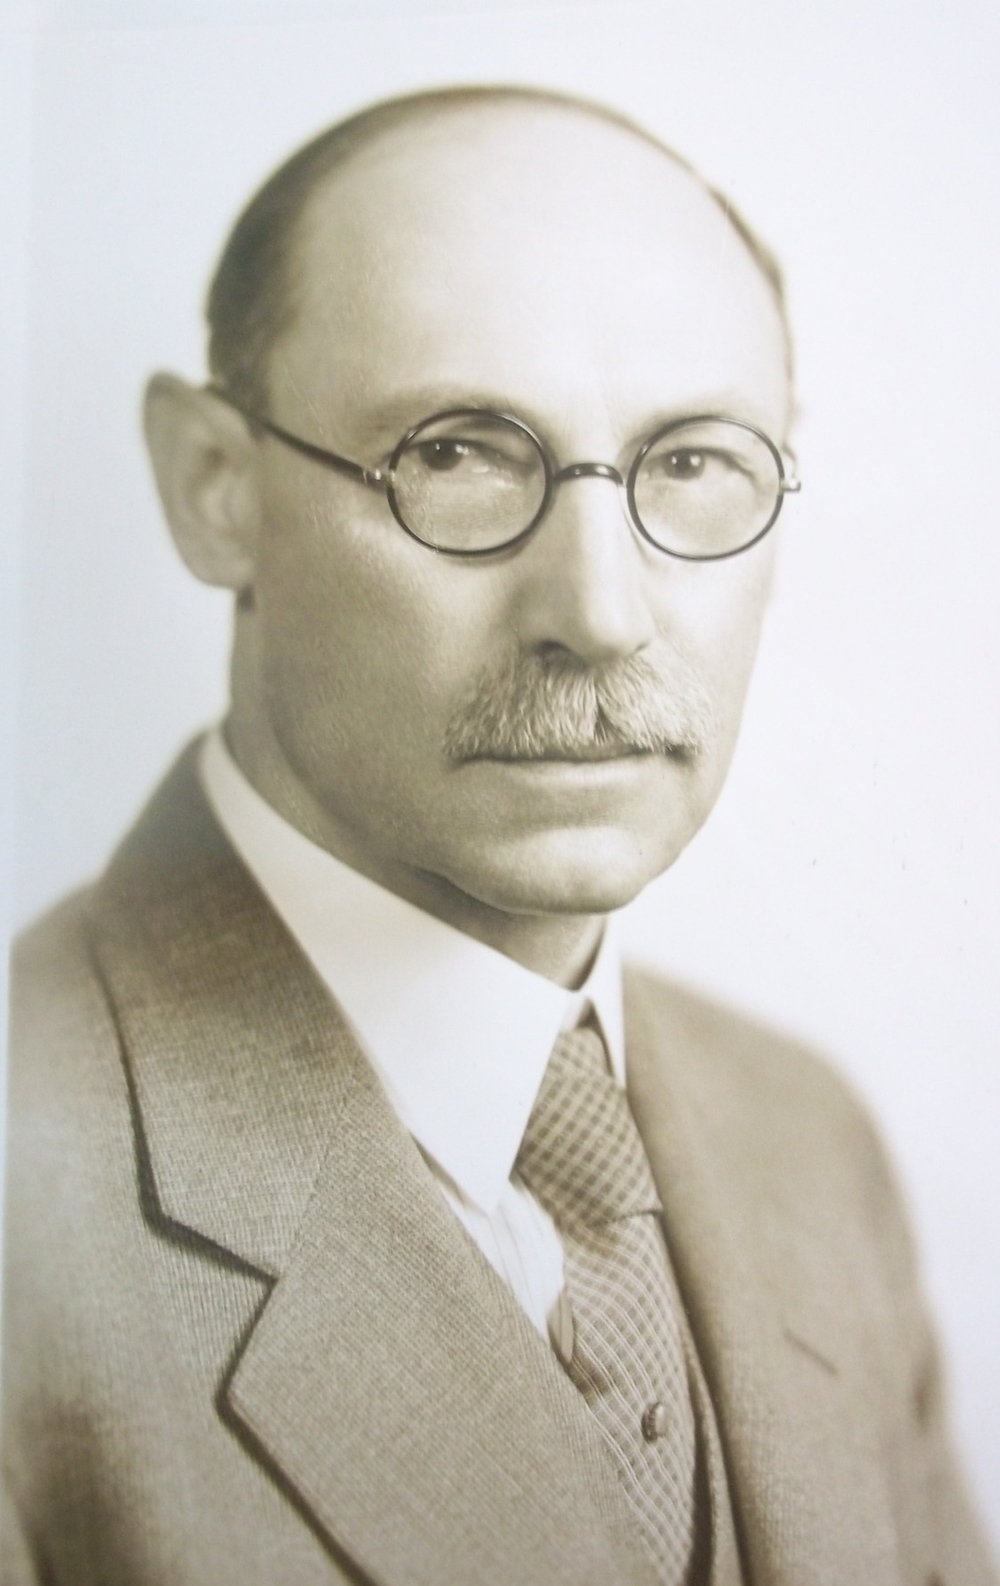 Dr. John Weinzirl Professor and bacteriologist at the University of Washington. Weinzirl served as secretary of the WTA through the 1920s and 30s, and was a director of the National Tuberculosis Association in the 1920s.